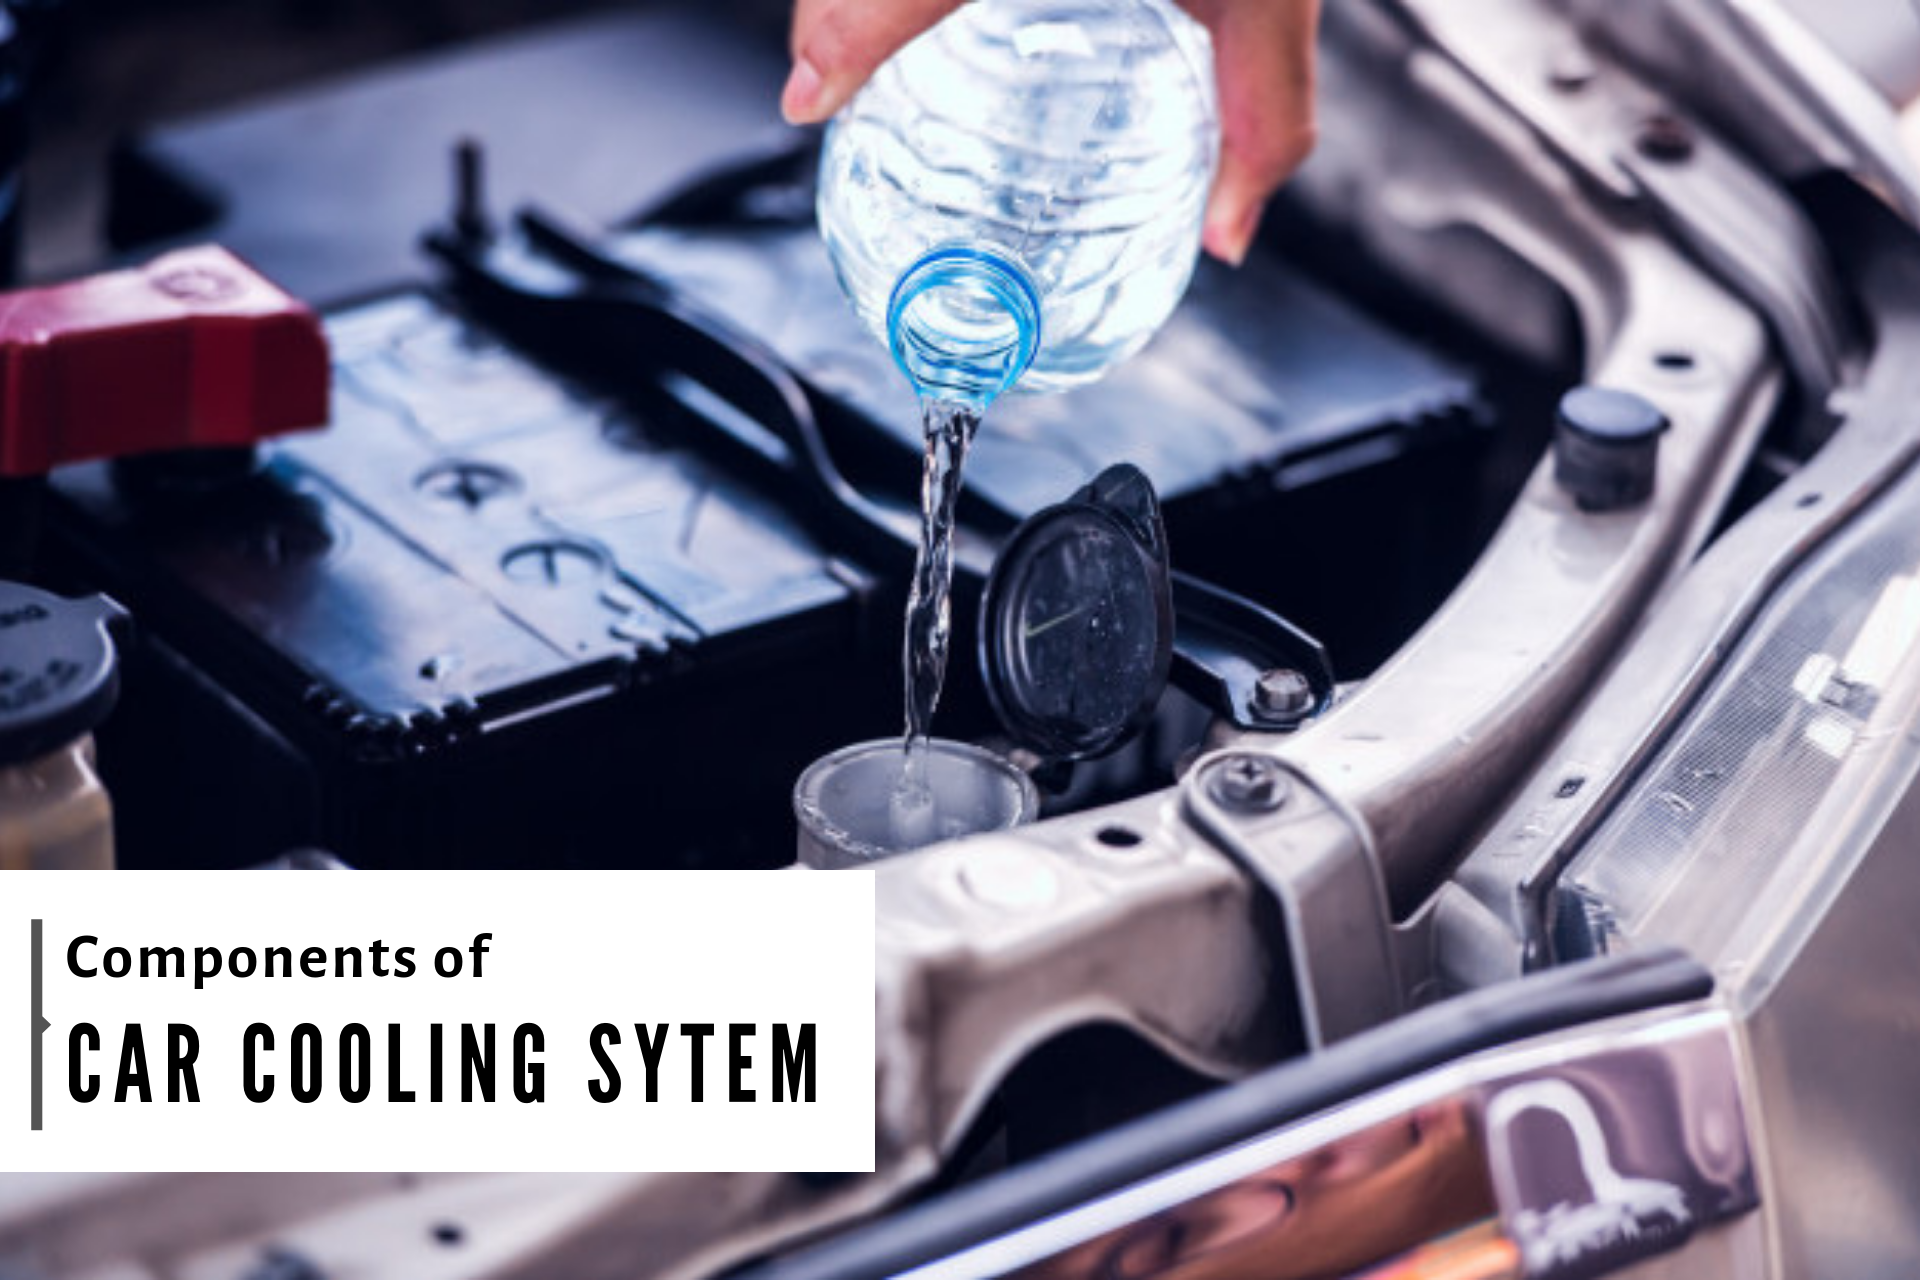 Car Cooling System >> What Are The Different Components Of The Car Cooling System